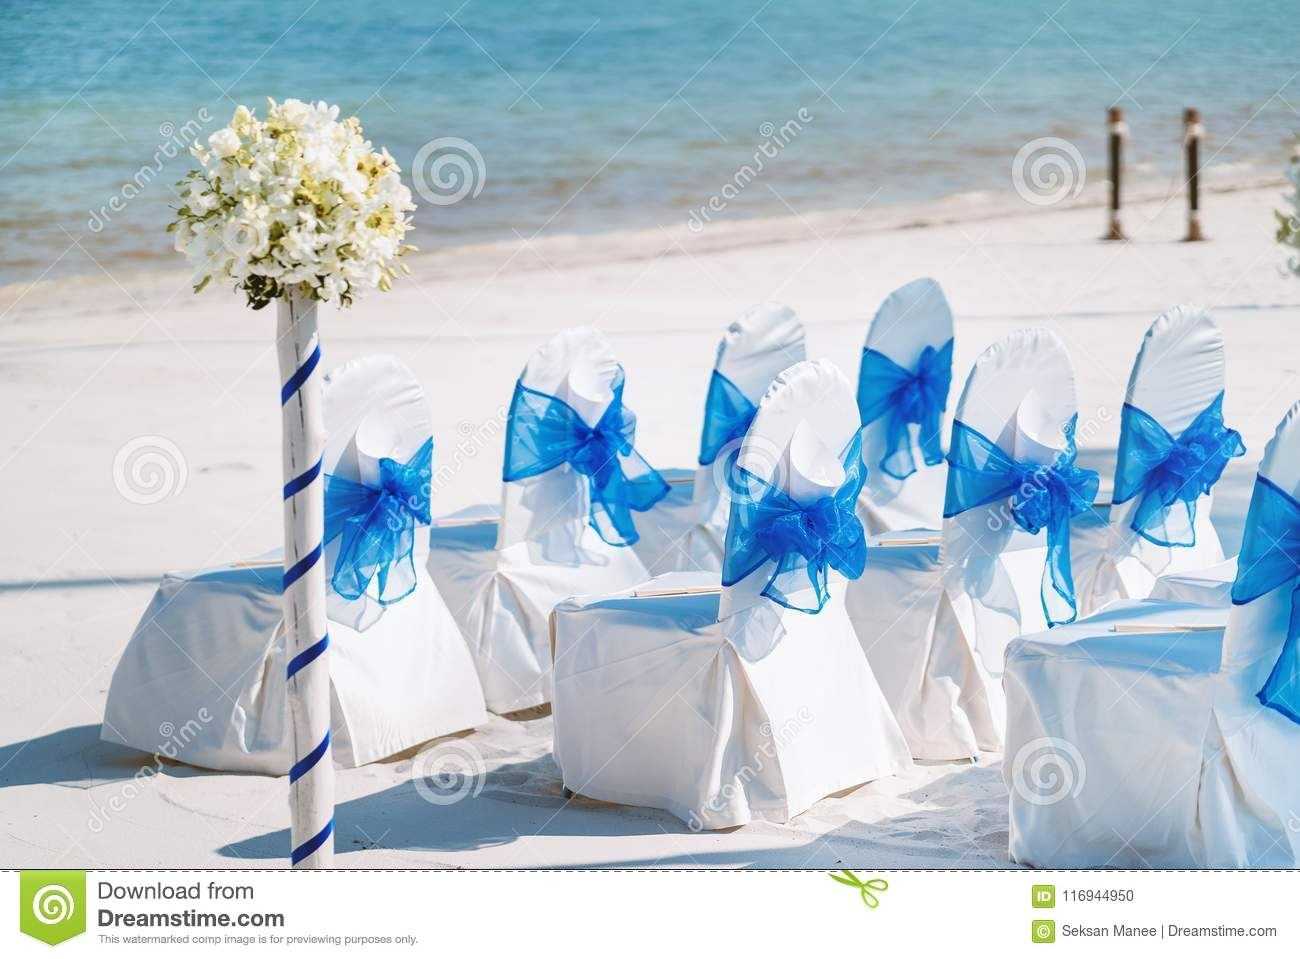 A Group Of White Spandex Chairs Cover With Blue Organza Sash For Beach Wedding Venue Setup Stock Photo Image Of Celebration Blue 116944950